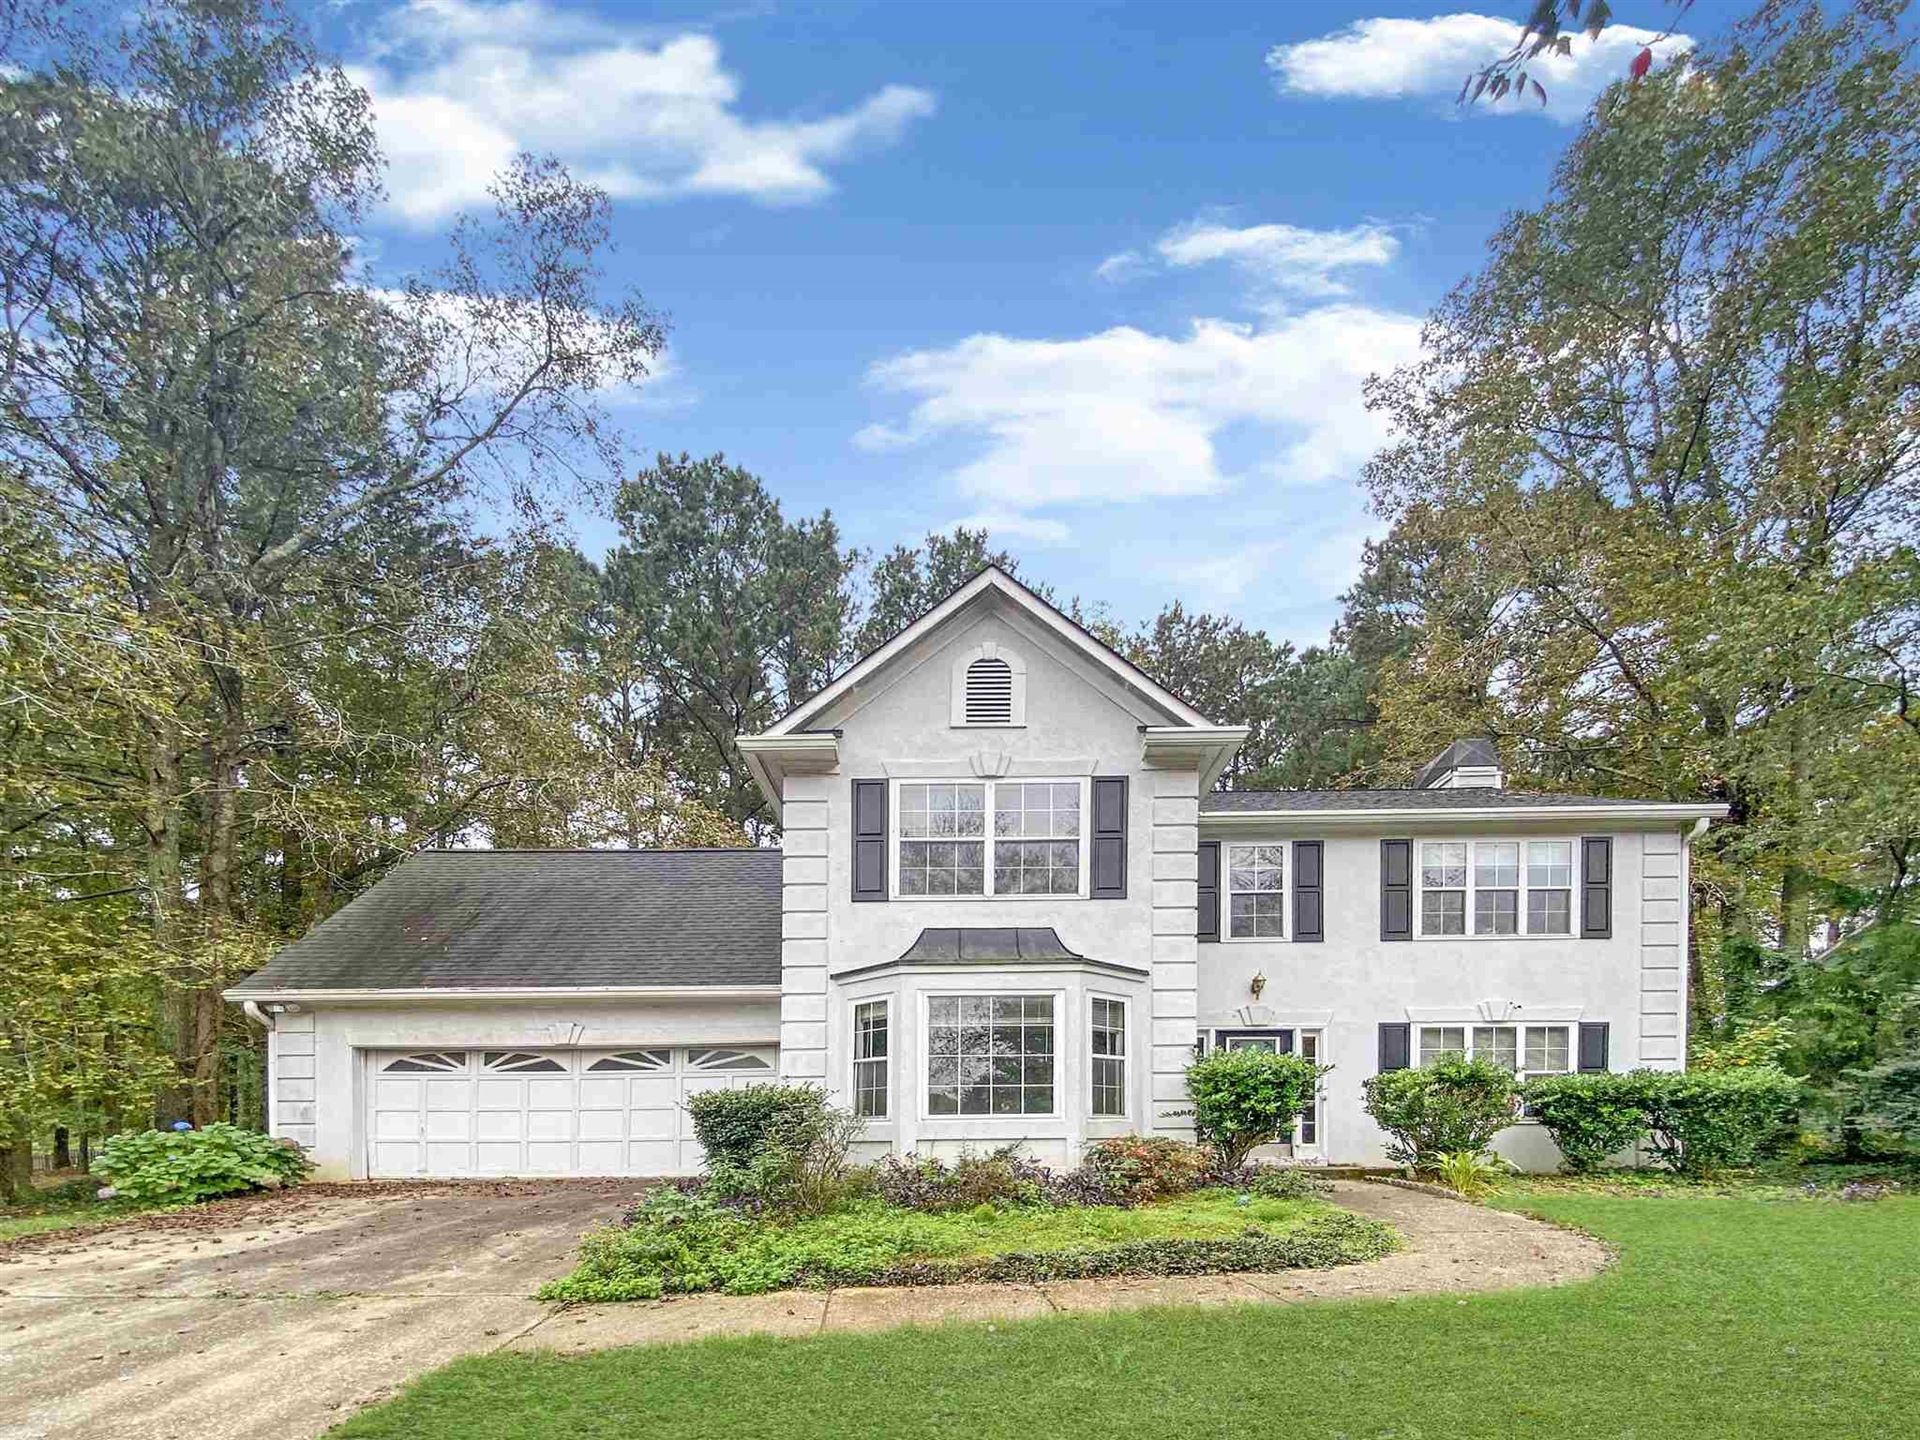 750 Birchberry Ter, Atlanta, GA 30331 - MLS#: 8880771